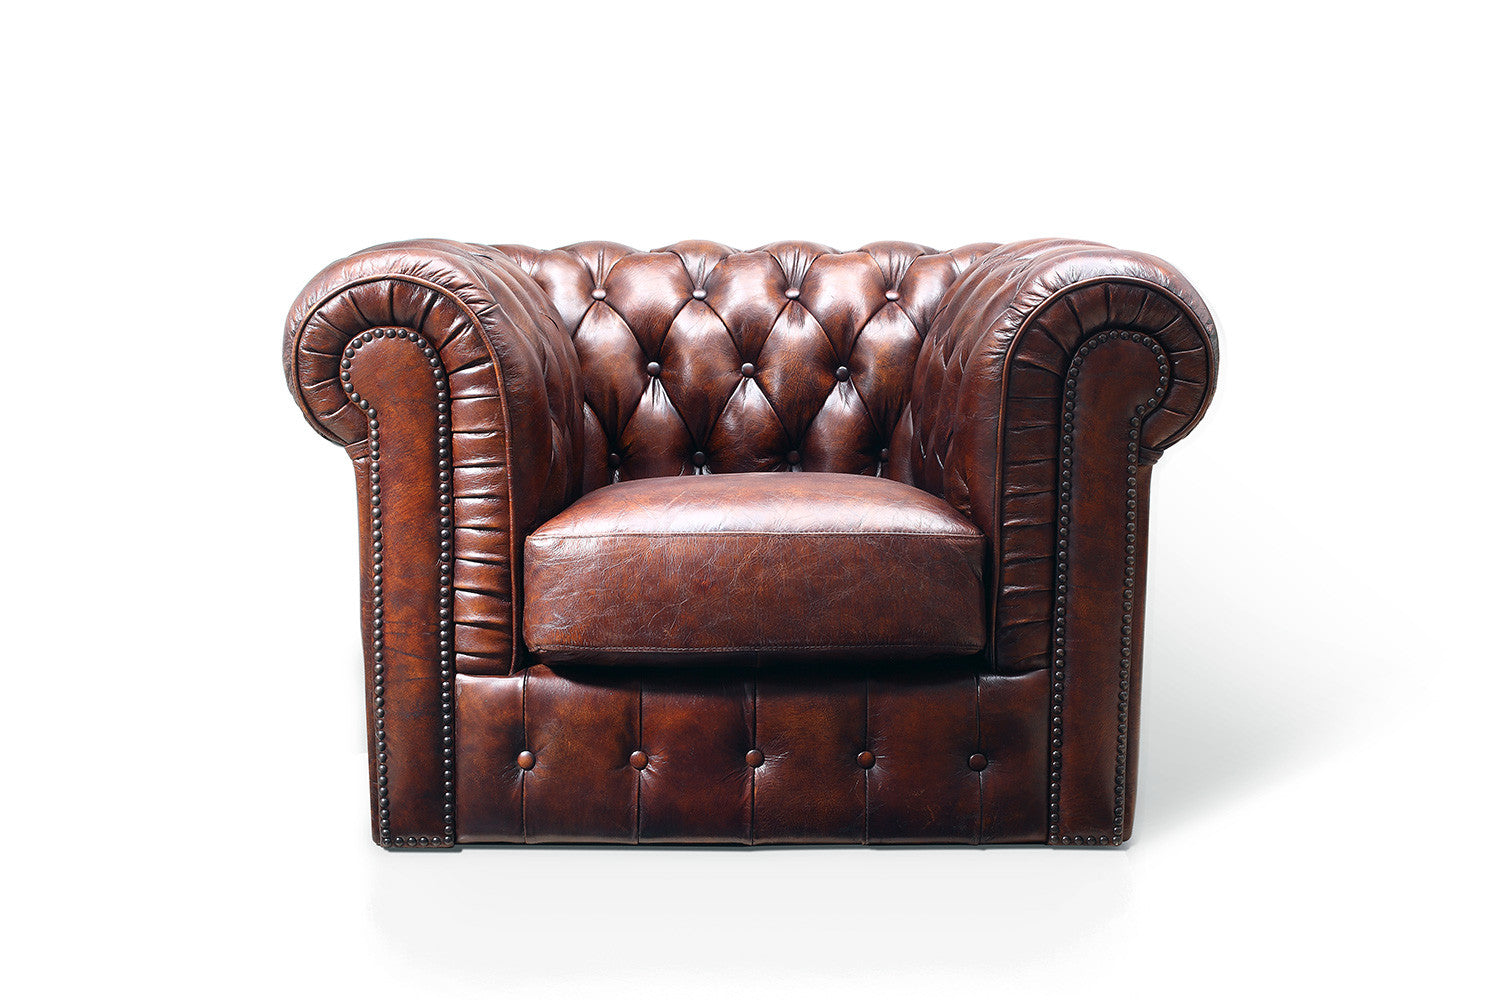 Fauteuil chesterfield original rose moore - Fauteuil chesterfield cuir marron ...